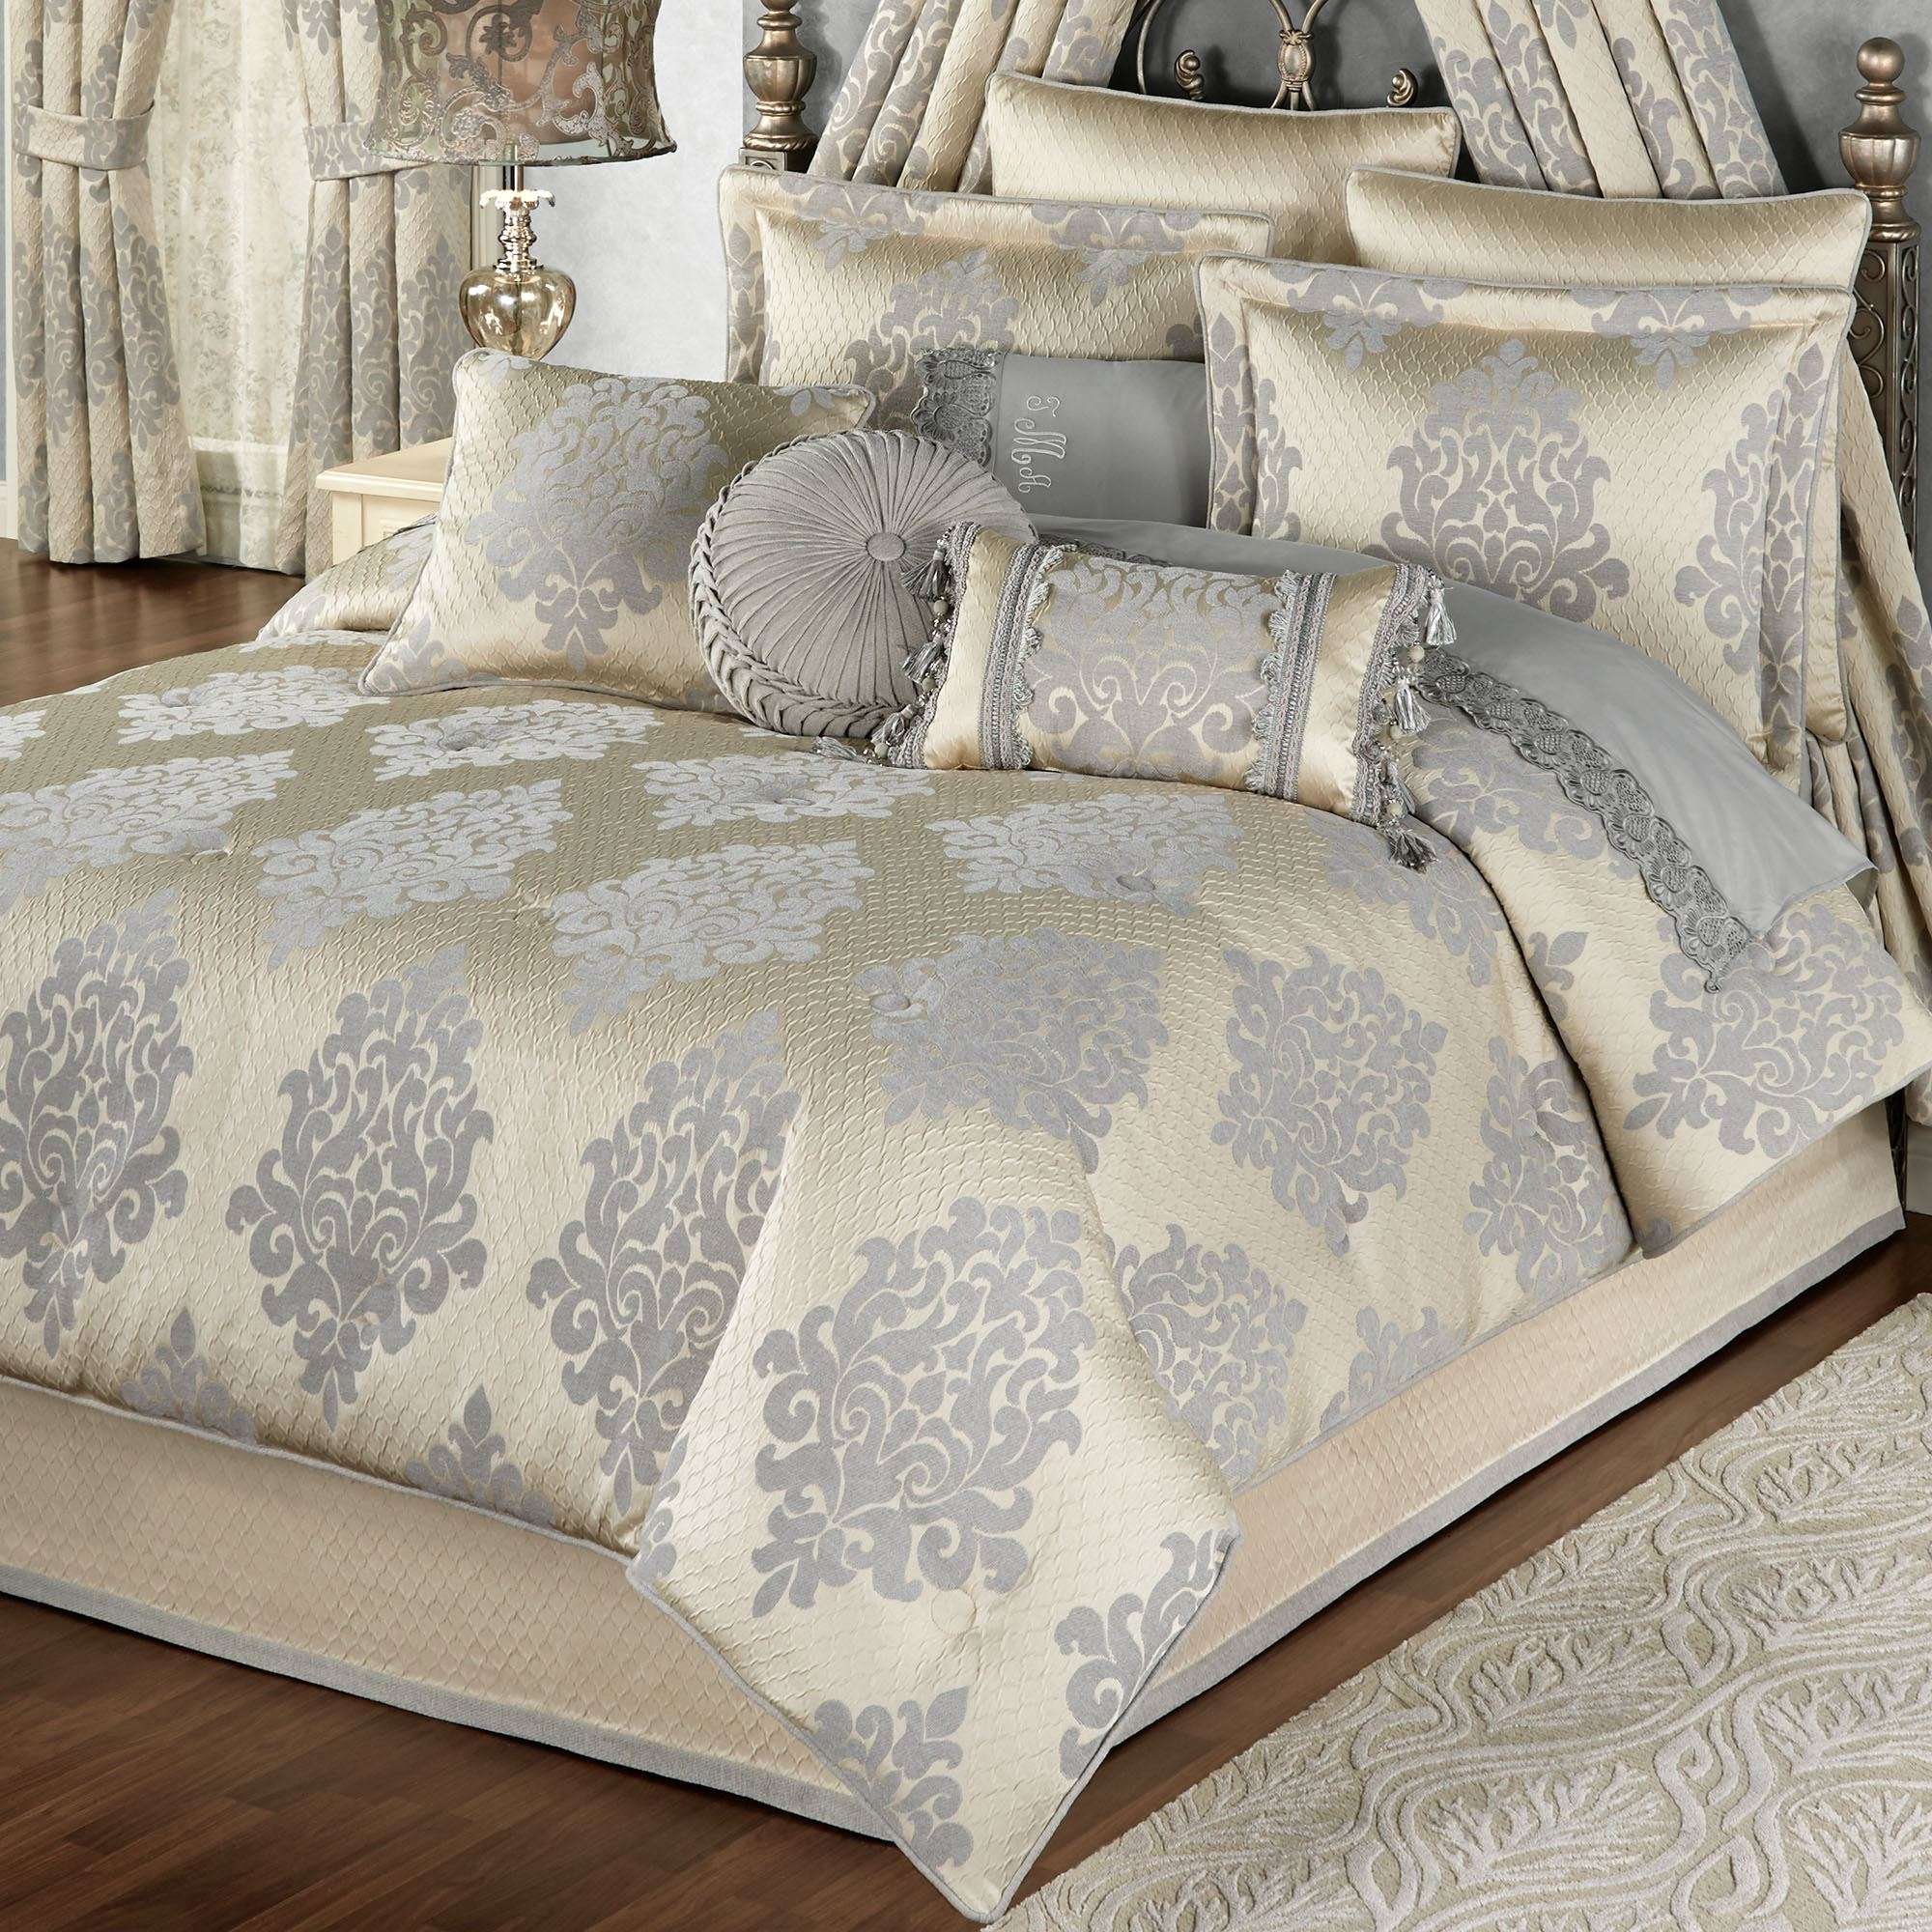 sets a bed home georgette in walmart ip oversized set bag chic piece com comforter queen